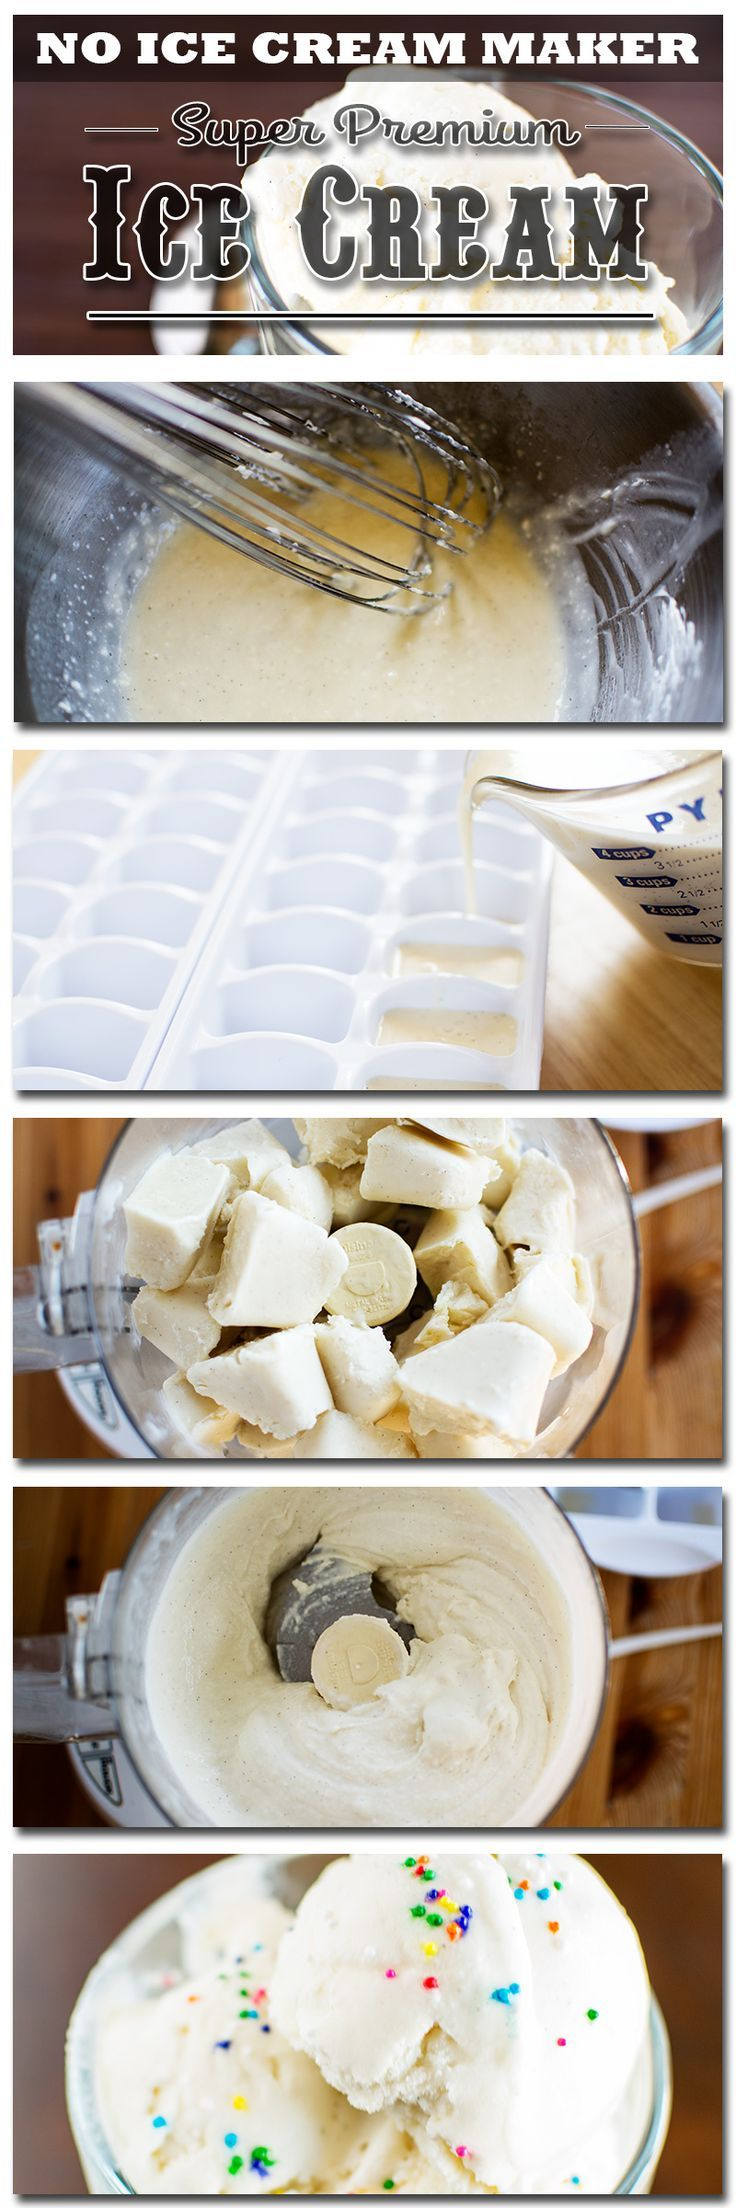 Stacey makes Super Premium Vanilla Ice Cream at home, without an ice cream maker!